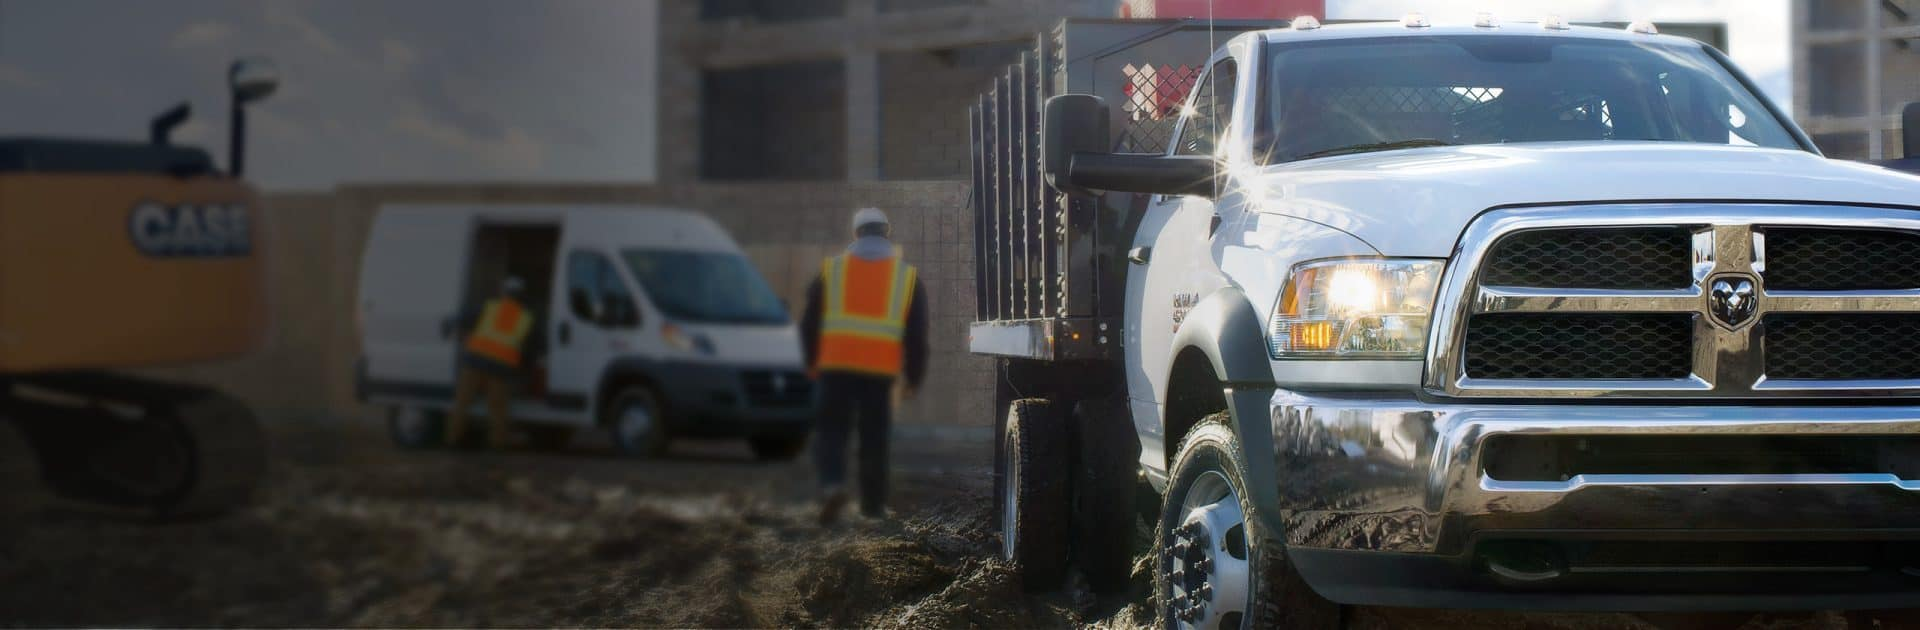 2018 Ram Trucks Chassis Cab on a Jobsite